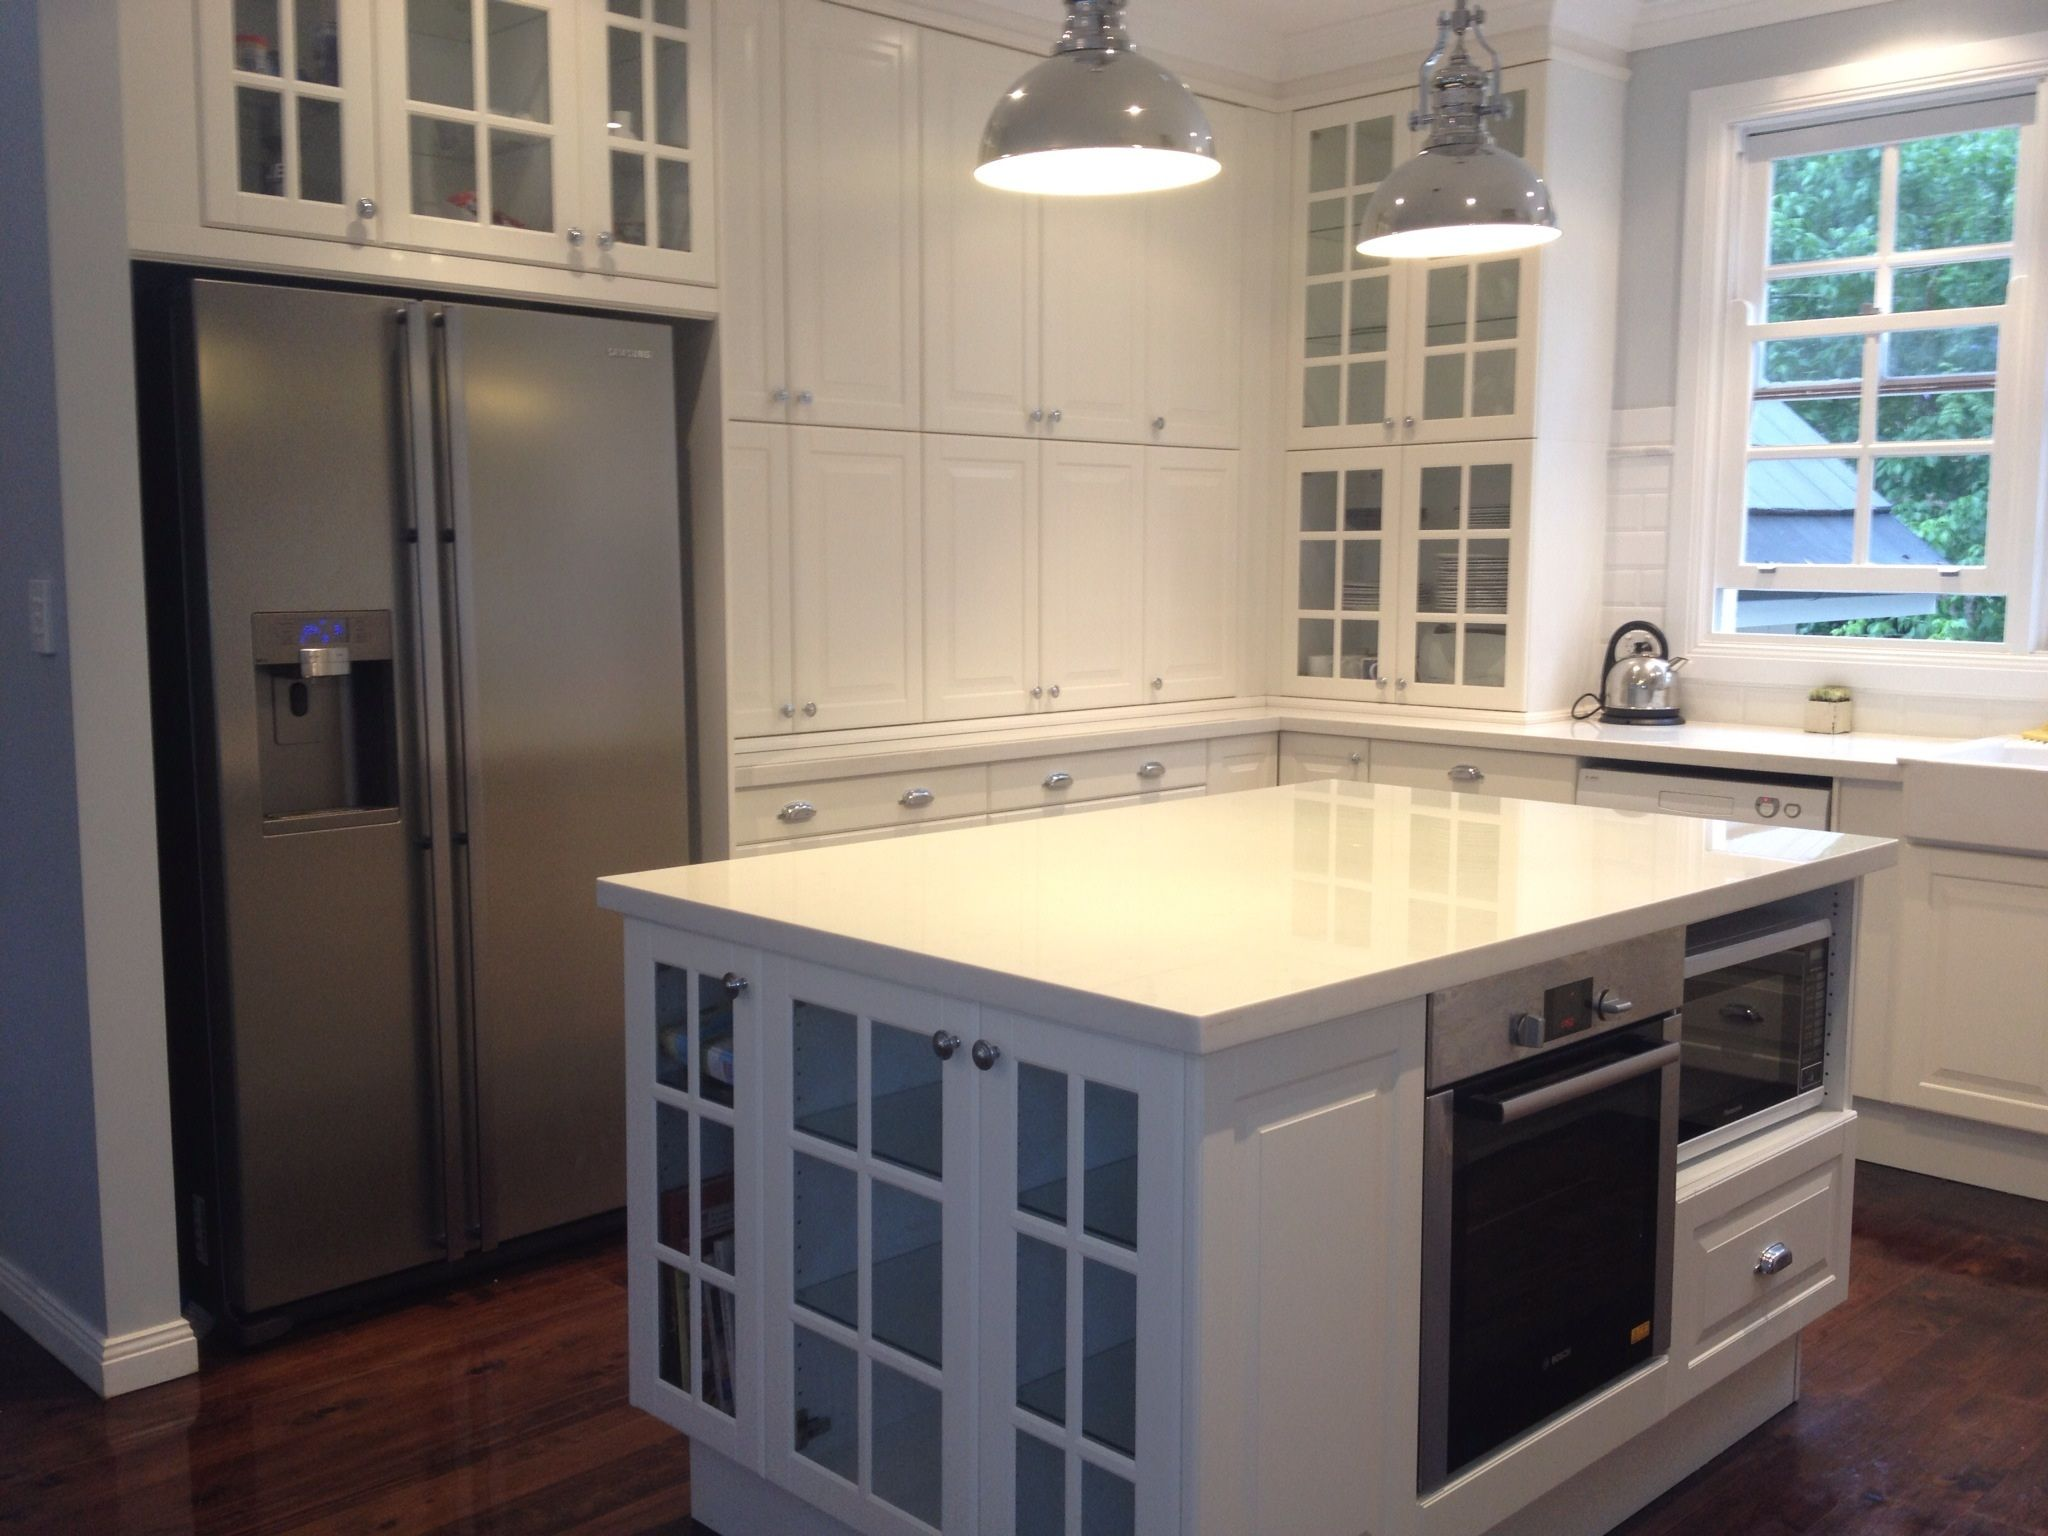 Tremendous Remodel White Gloss Acrylic Built In Ikea